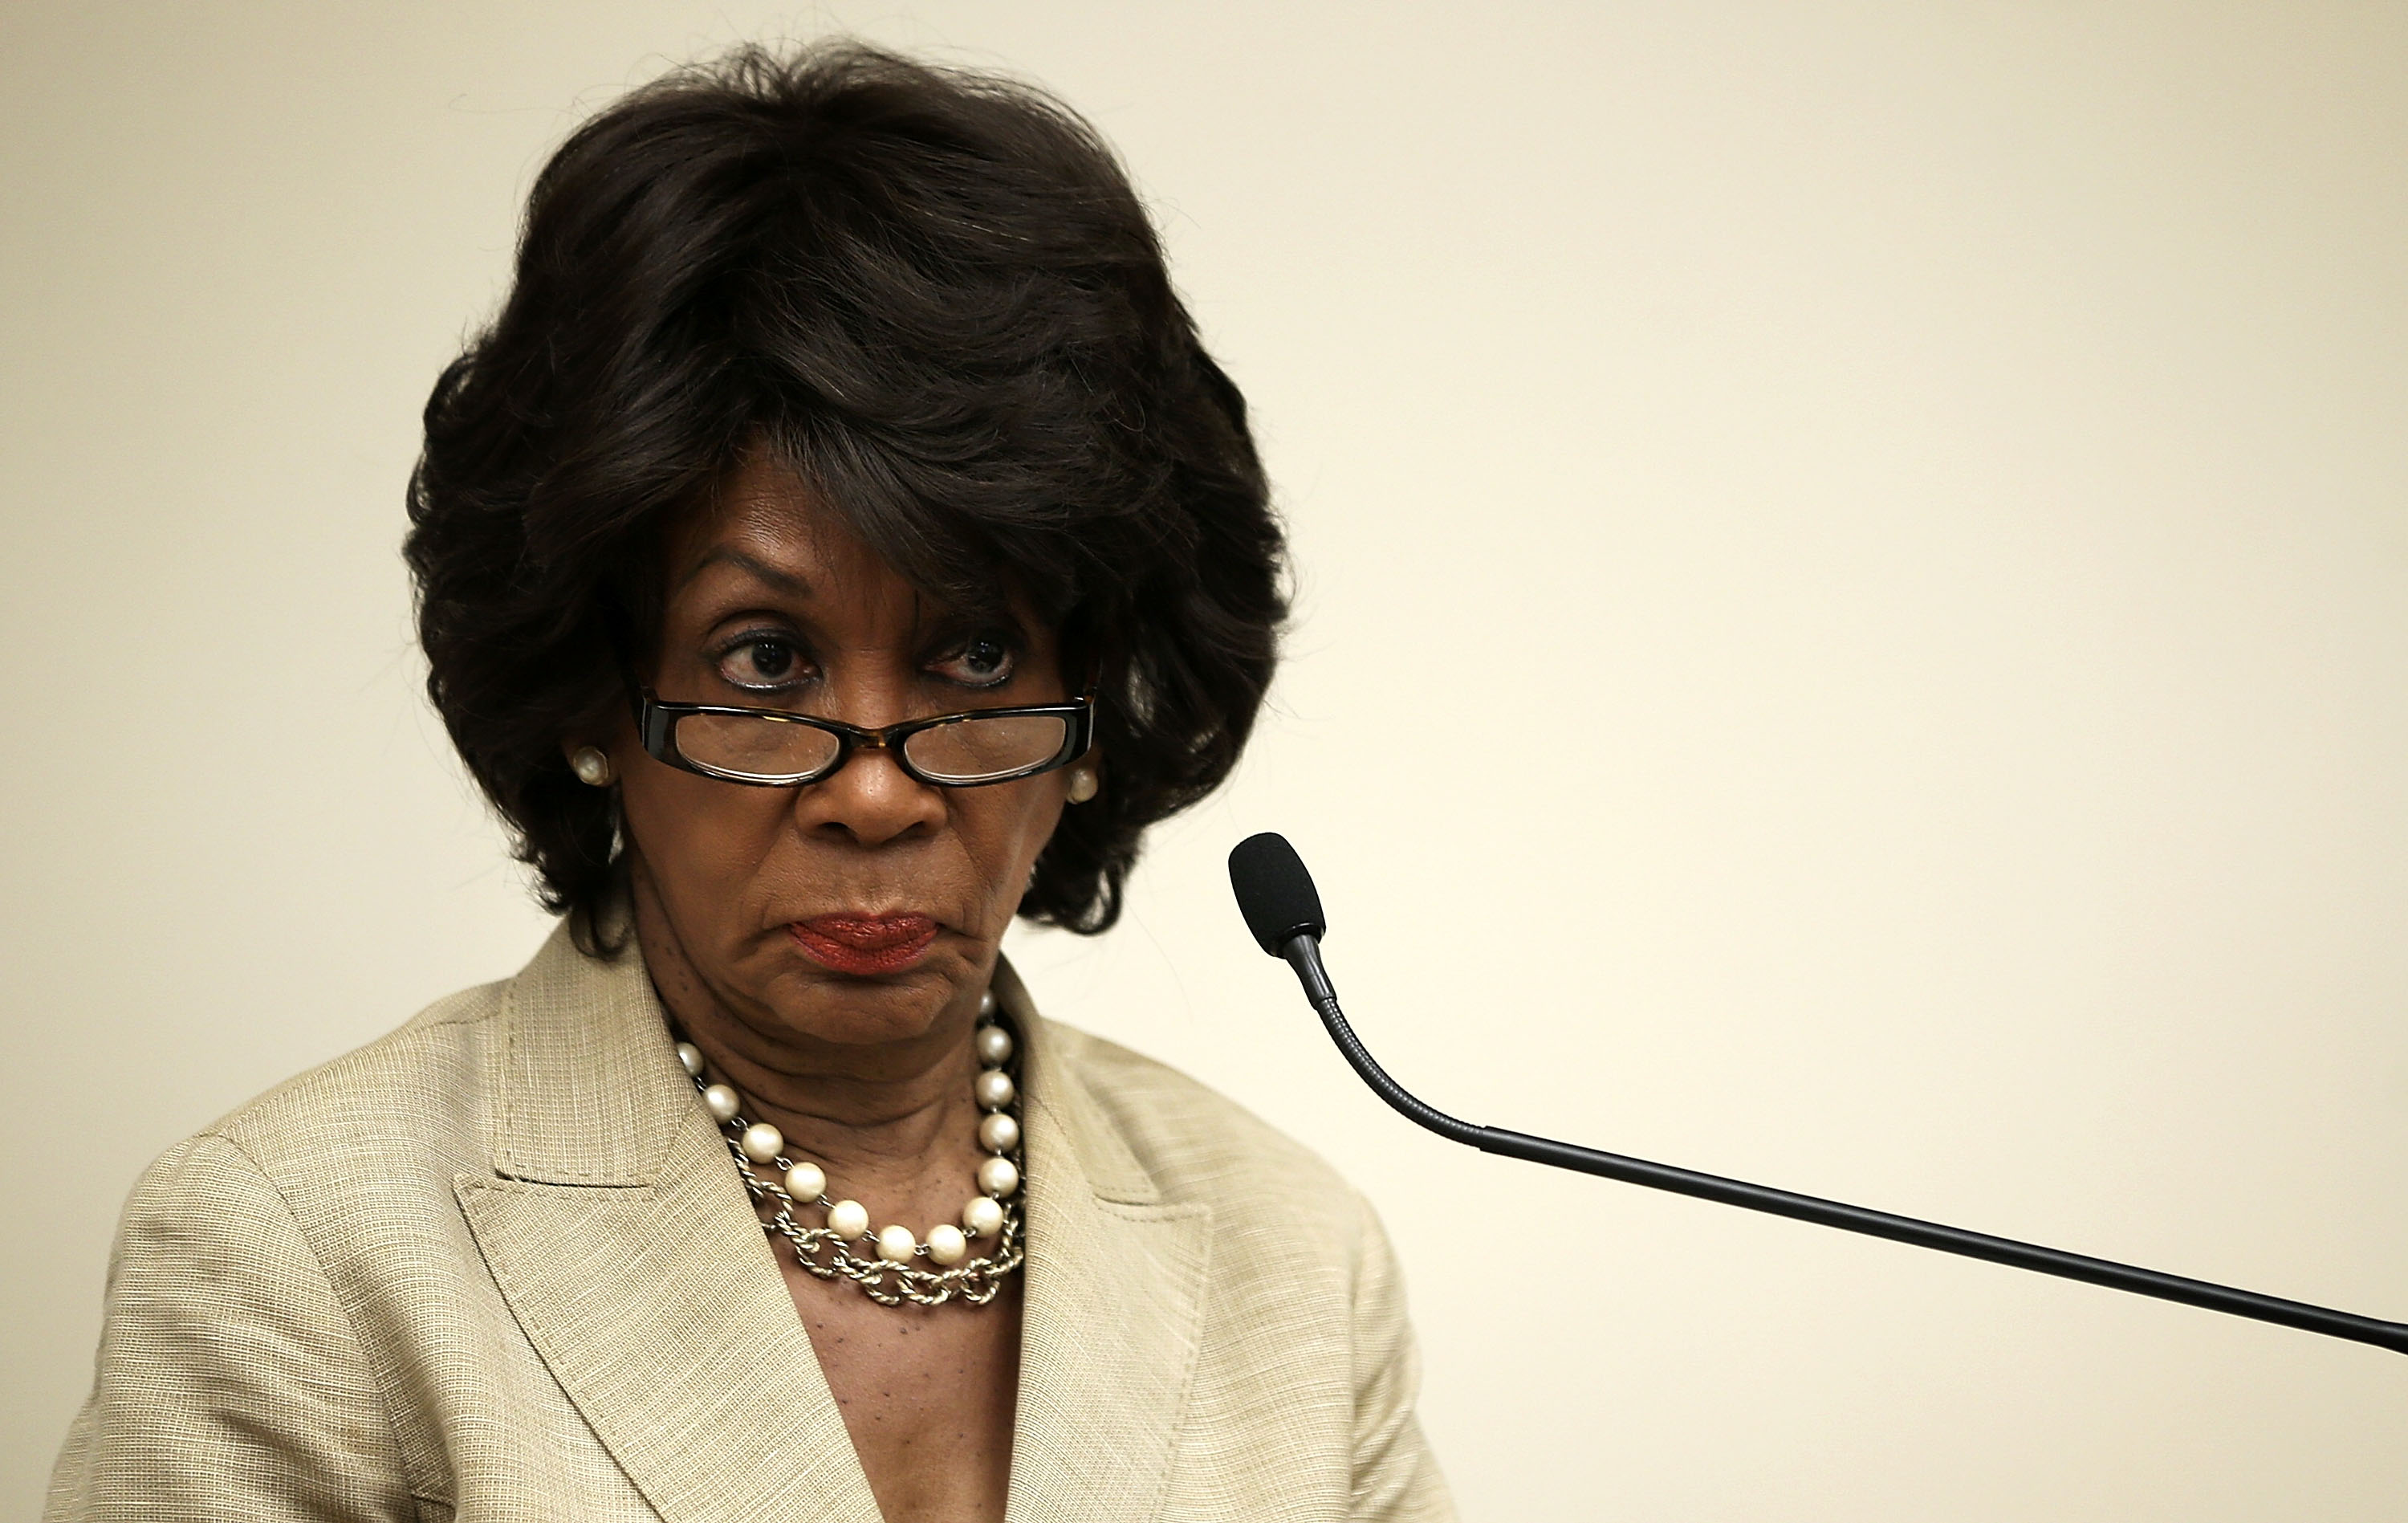 Maxine Waters Fires Back at Bill O'Reilly: 'I Cannot Be Intimidated'